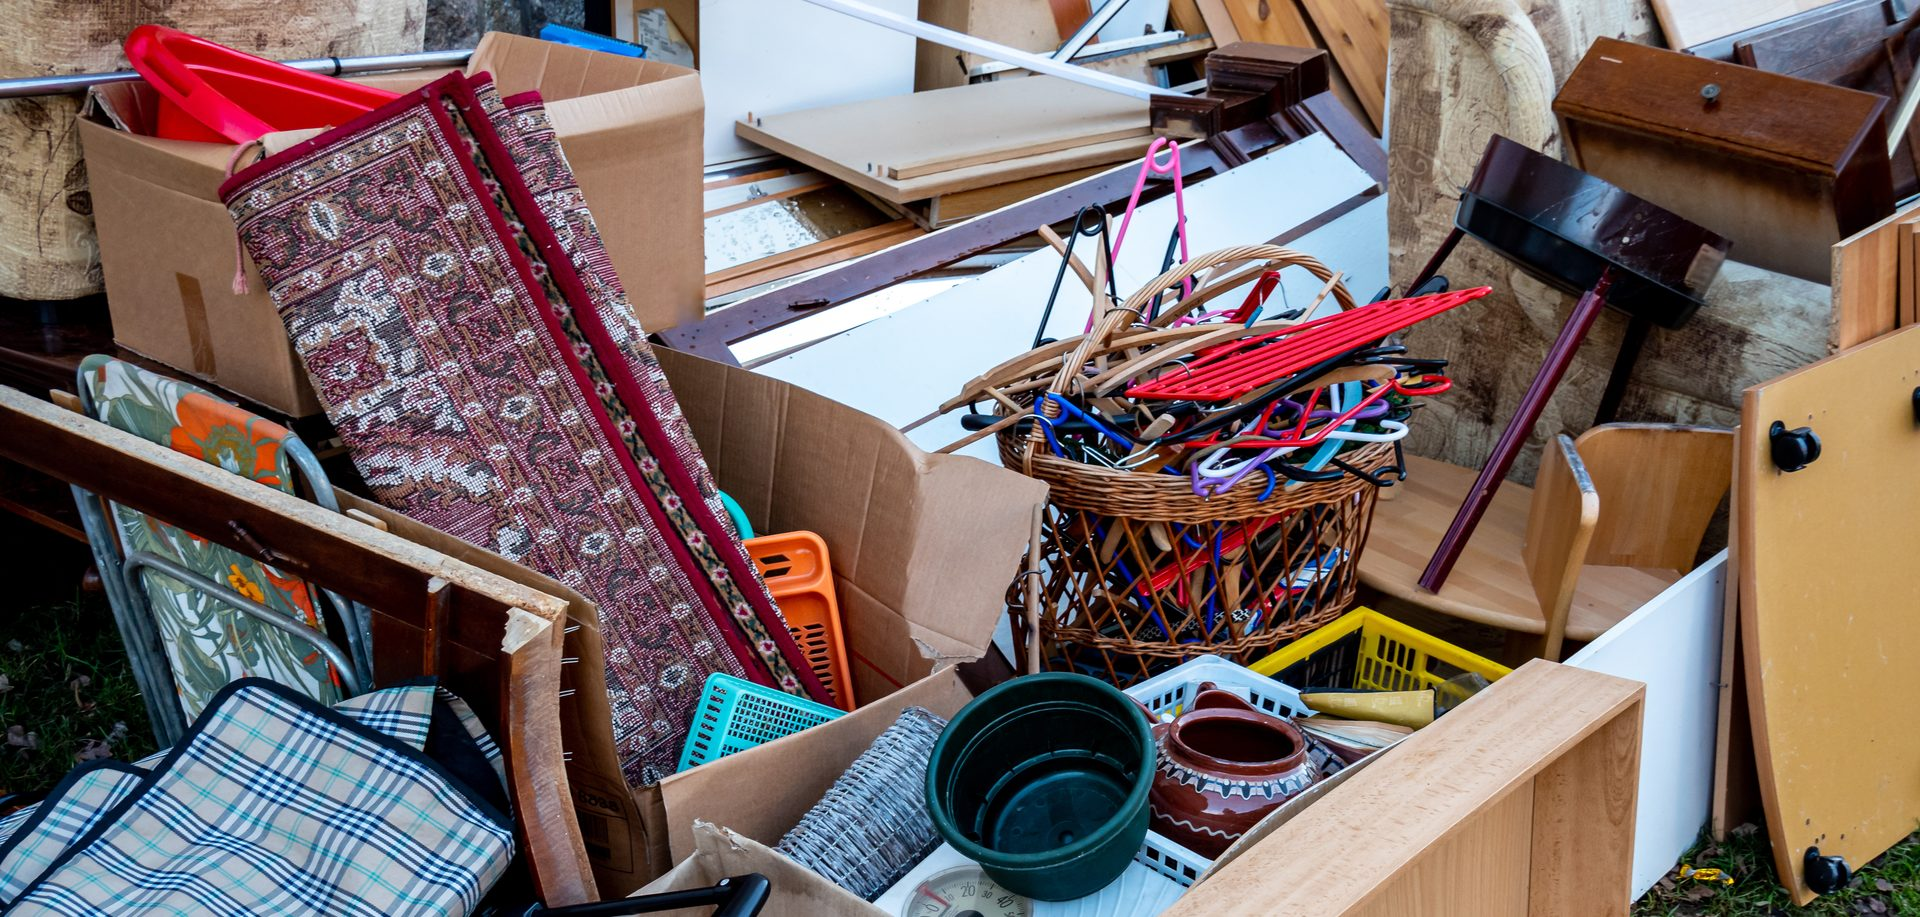 san antonio moving company junk removal